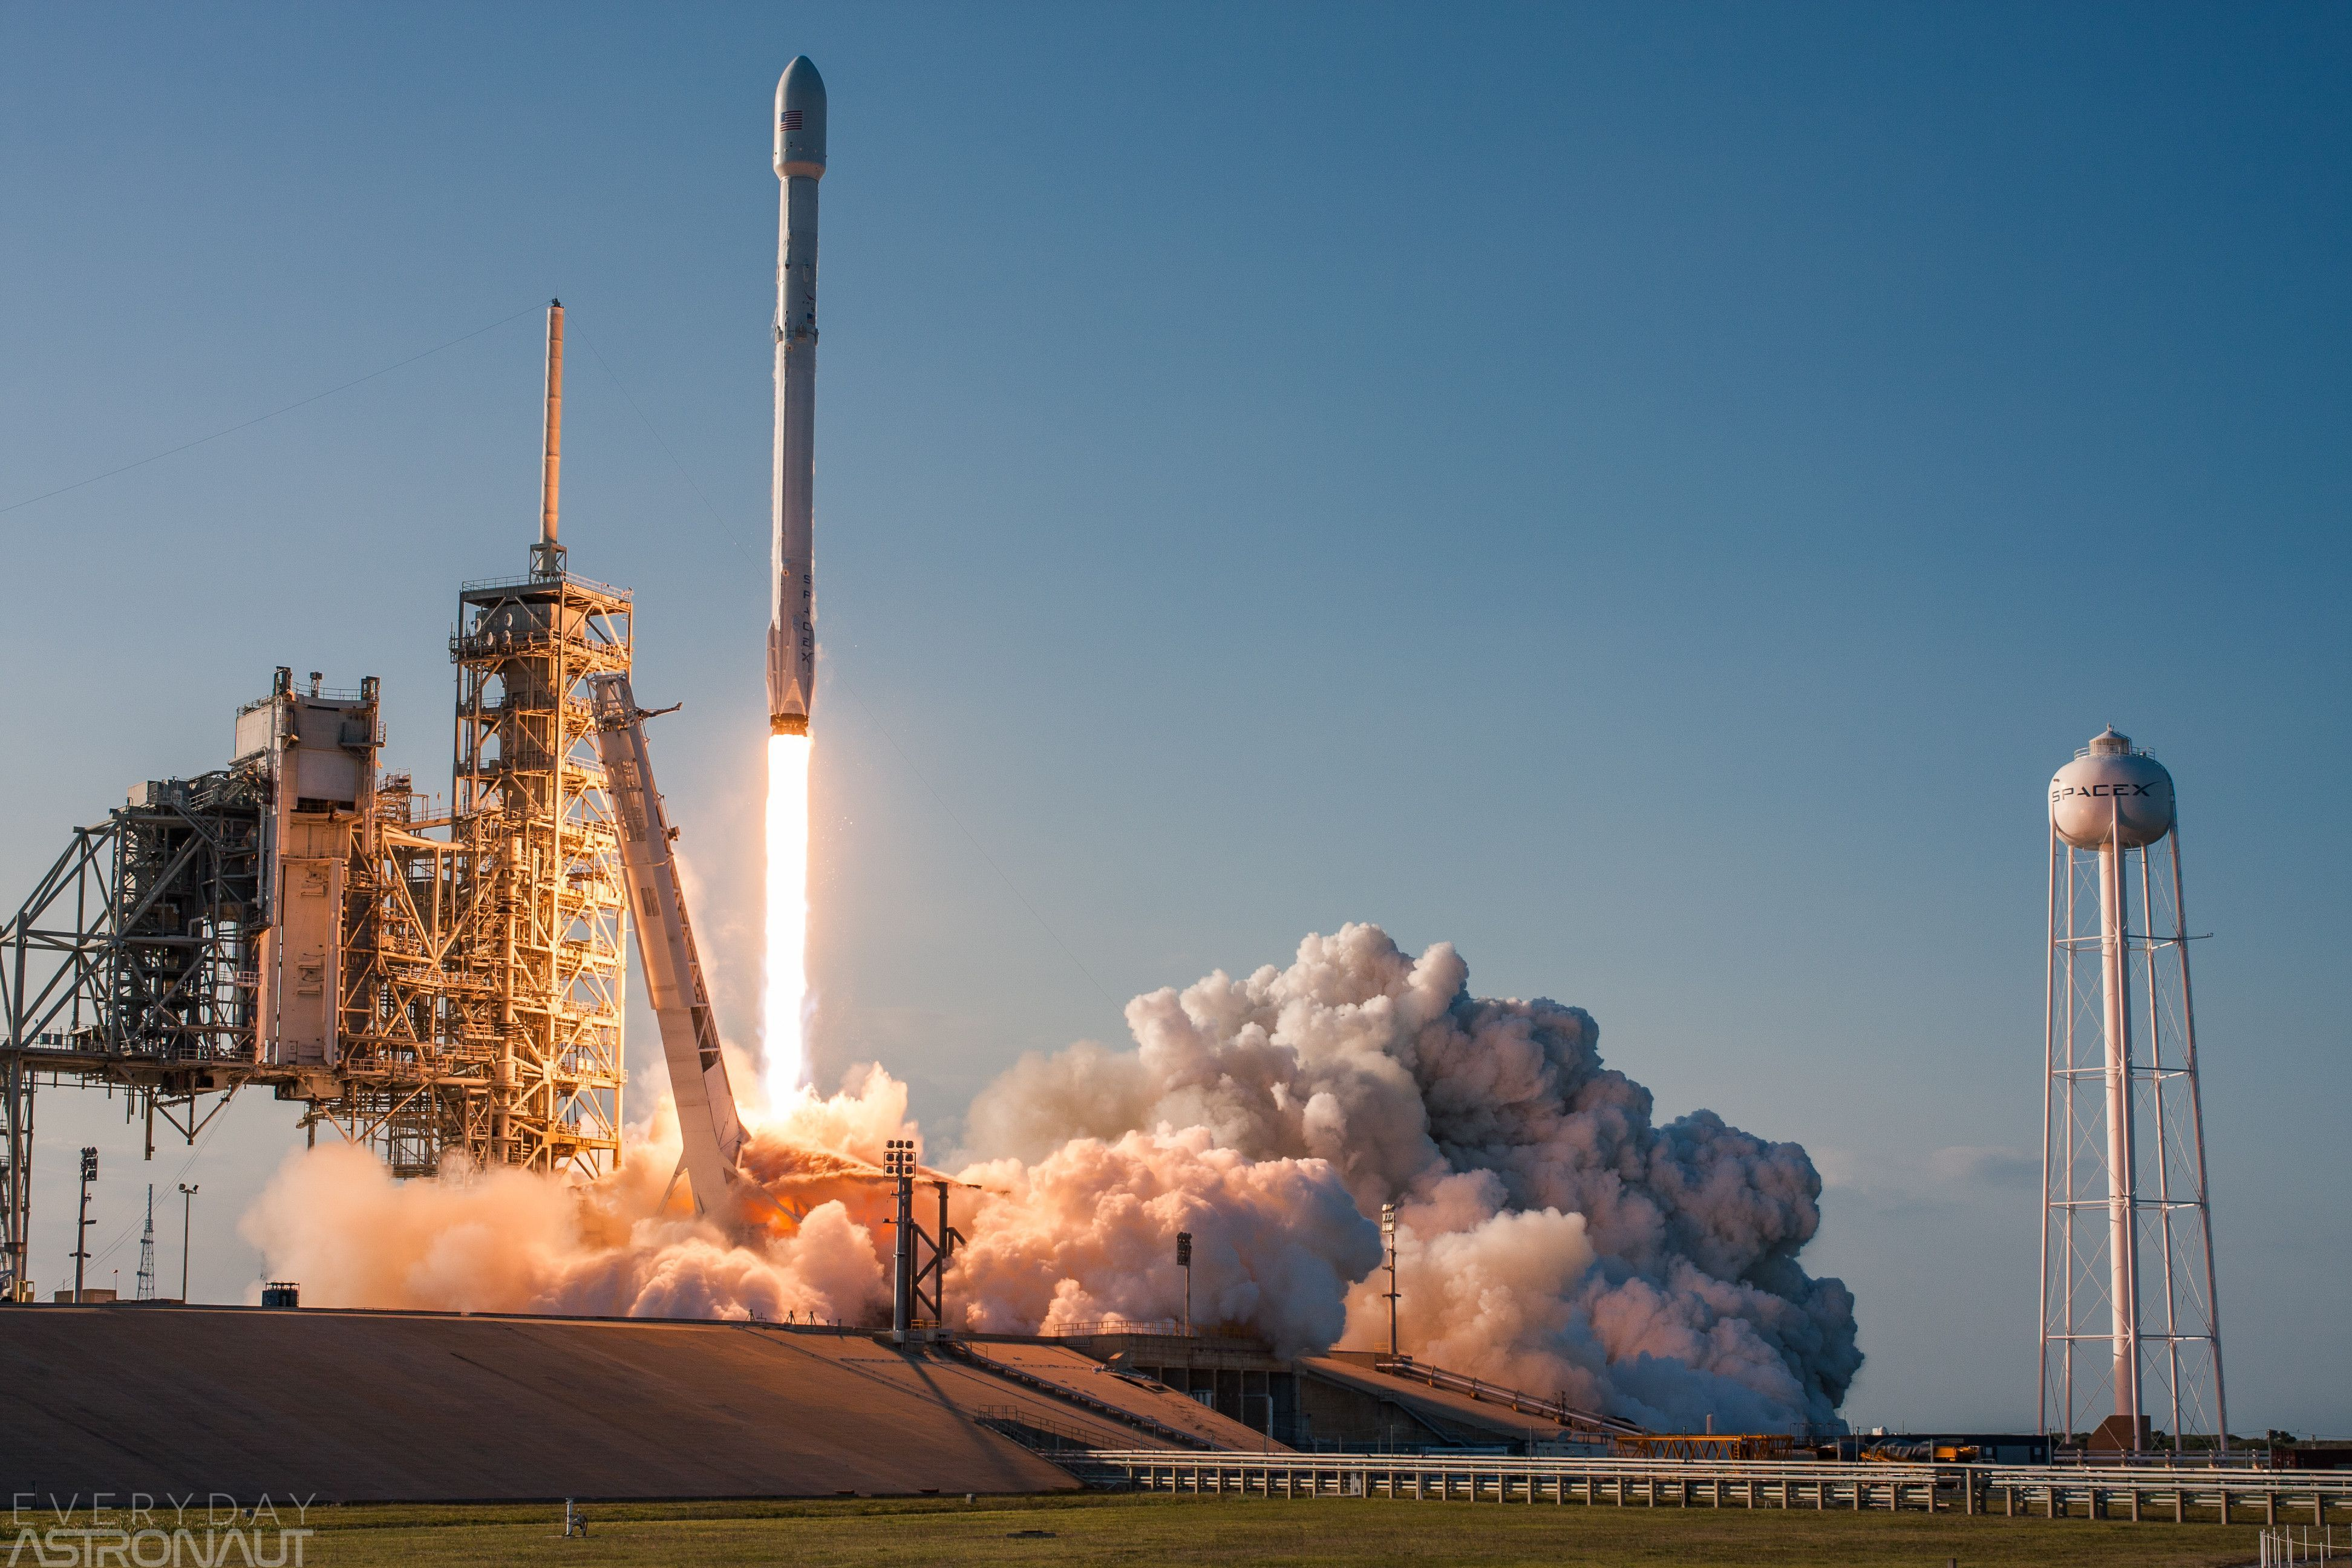 Nasa Rocket Wallpapers Top Free Nasa Rocket Backgrounds Wallpaperaccess In 2020 Spacex Wallpaper Space Science And Nature